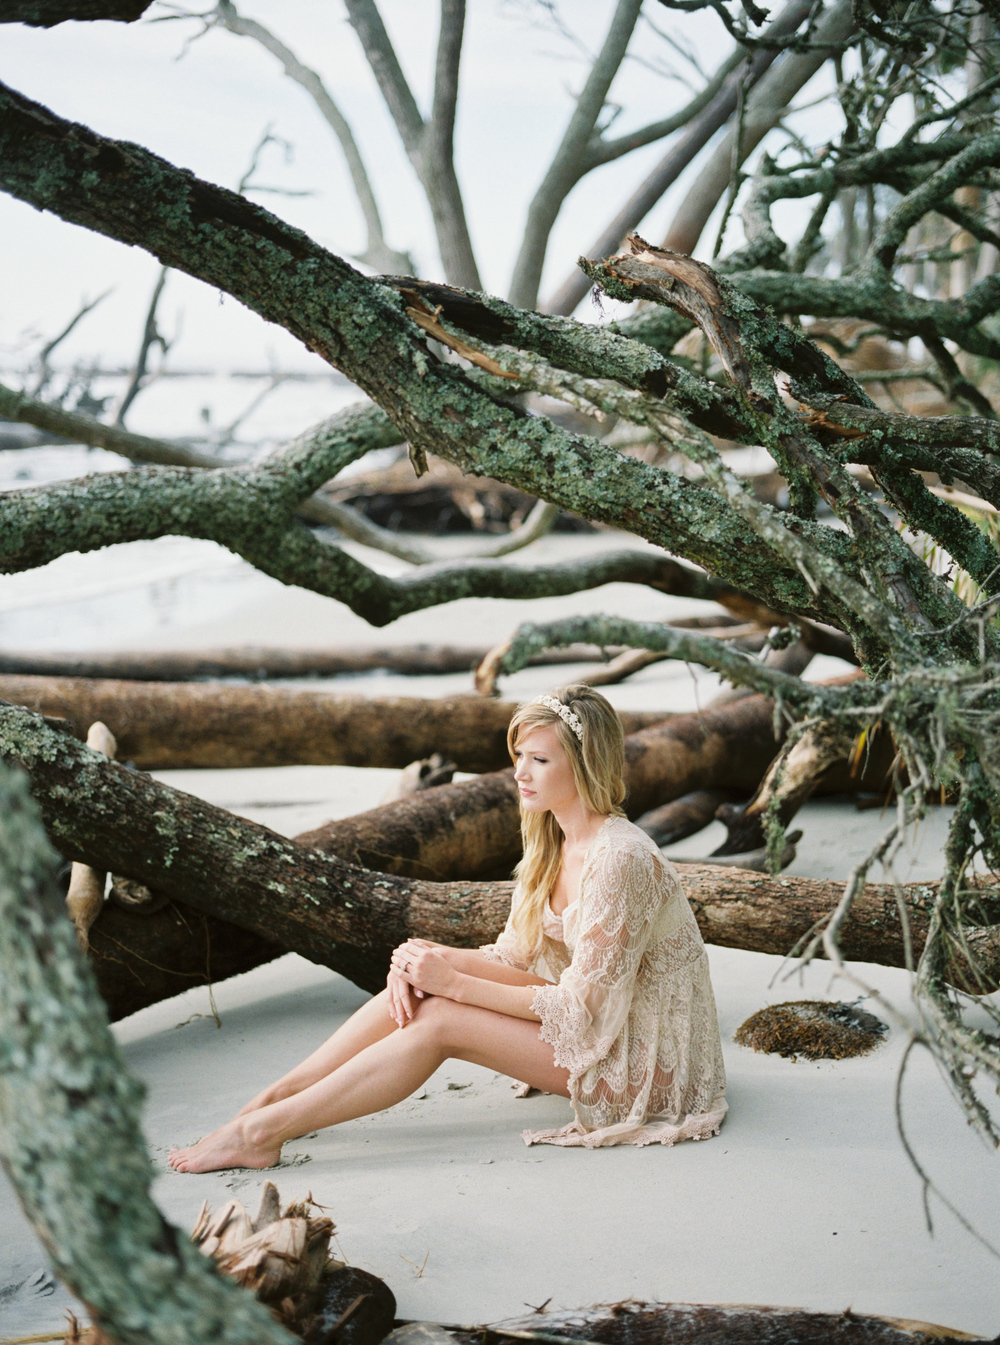 Holeigh_abercrombie_mamiya645_fuji400_south_carolina_photovision.jpg